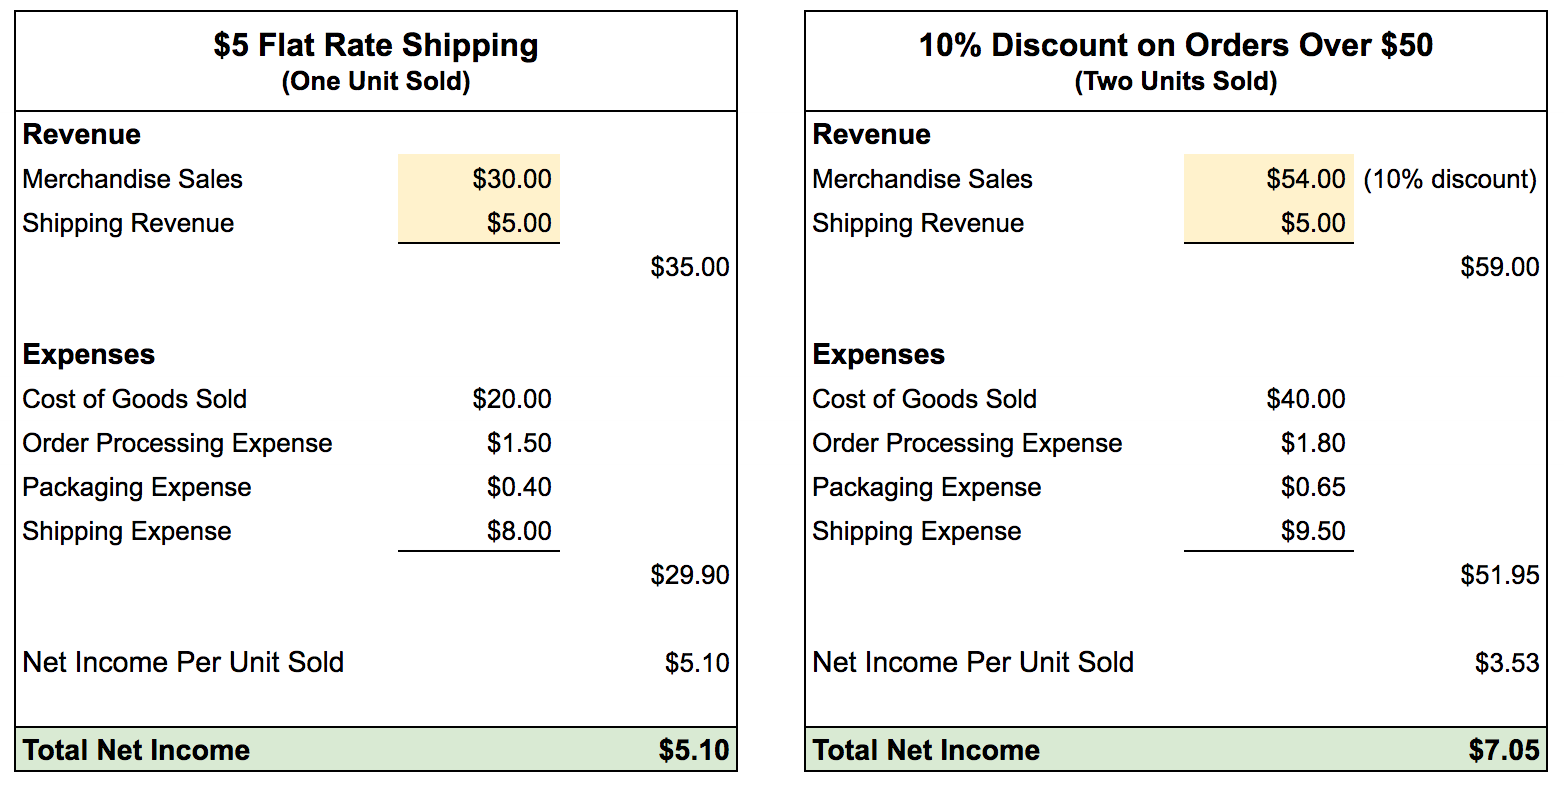 In this example, offering flat rate shipping for $5 produces a net income of $5.10 for a single unit sold. When two units are sold with a 10 percent discount, the net income increases to $7.05. <em>(Click image to enlarge.)</em>